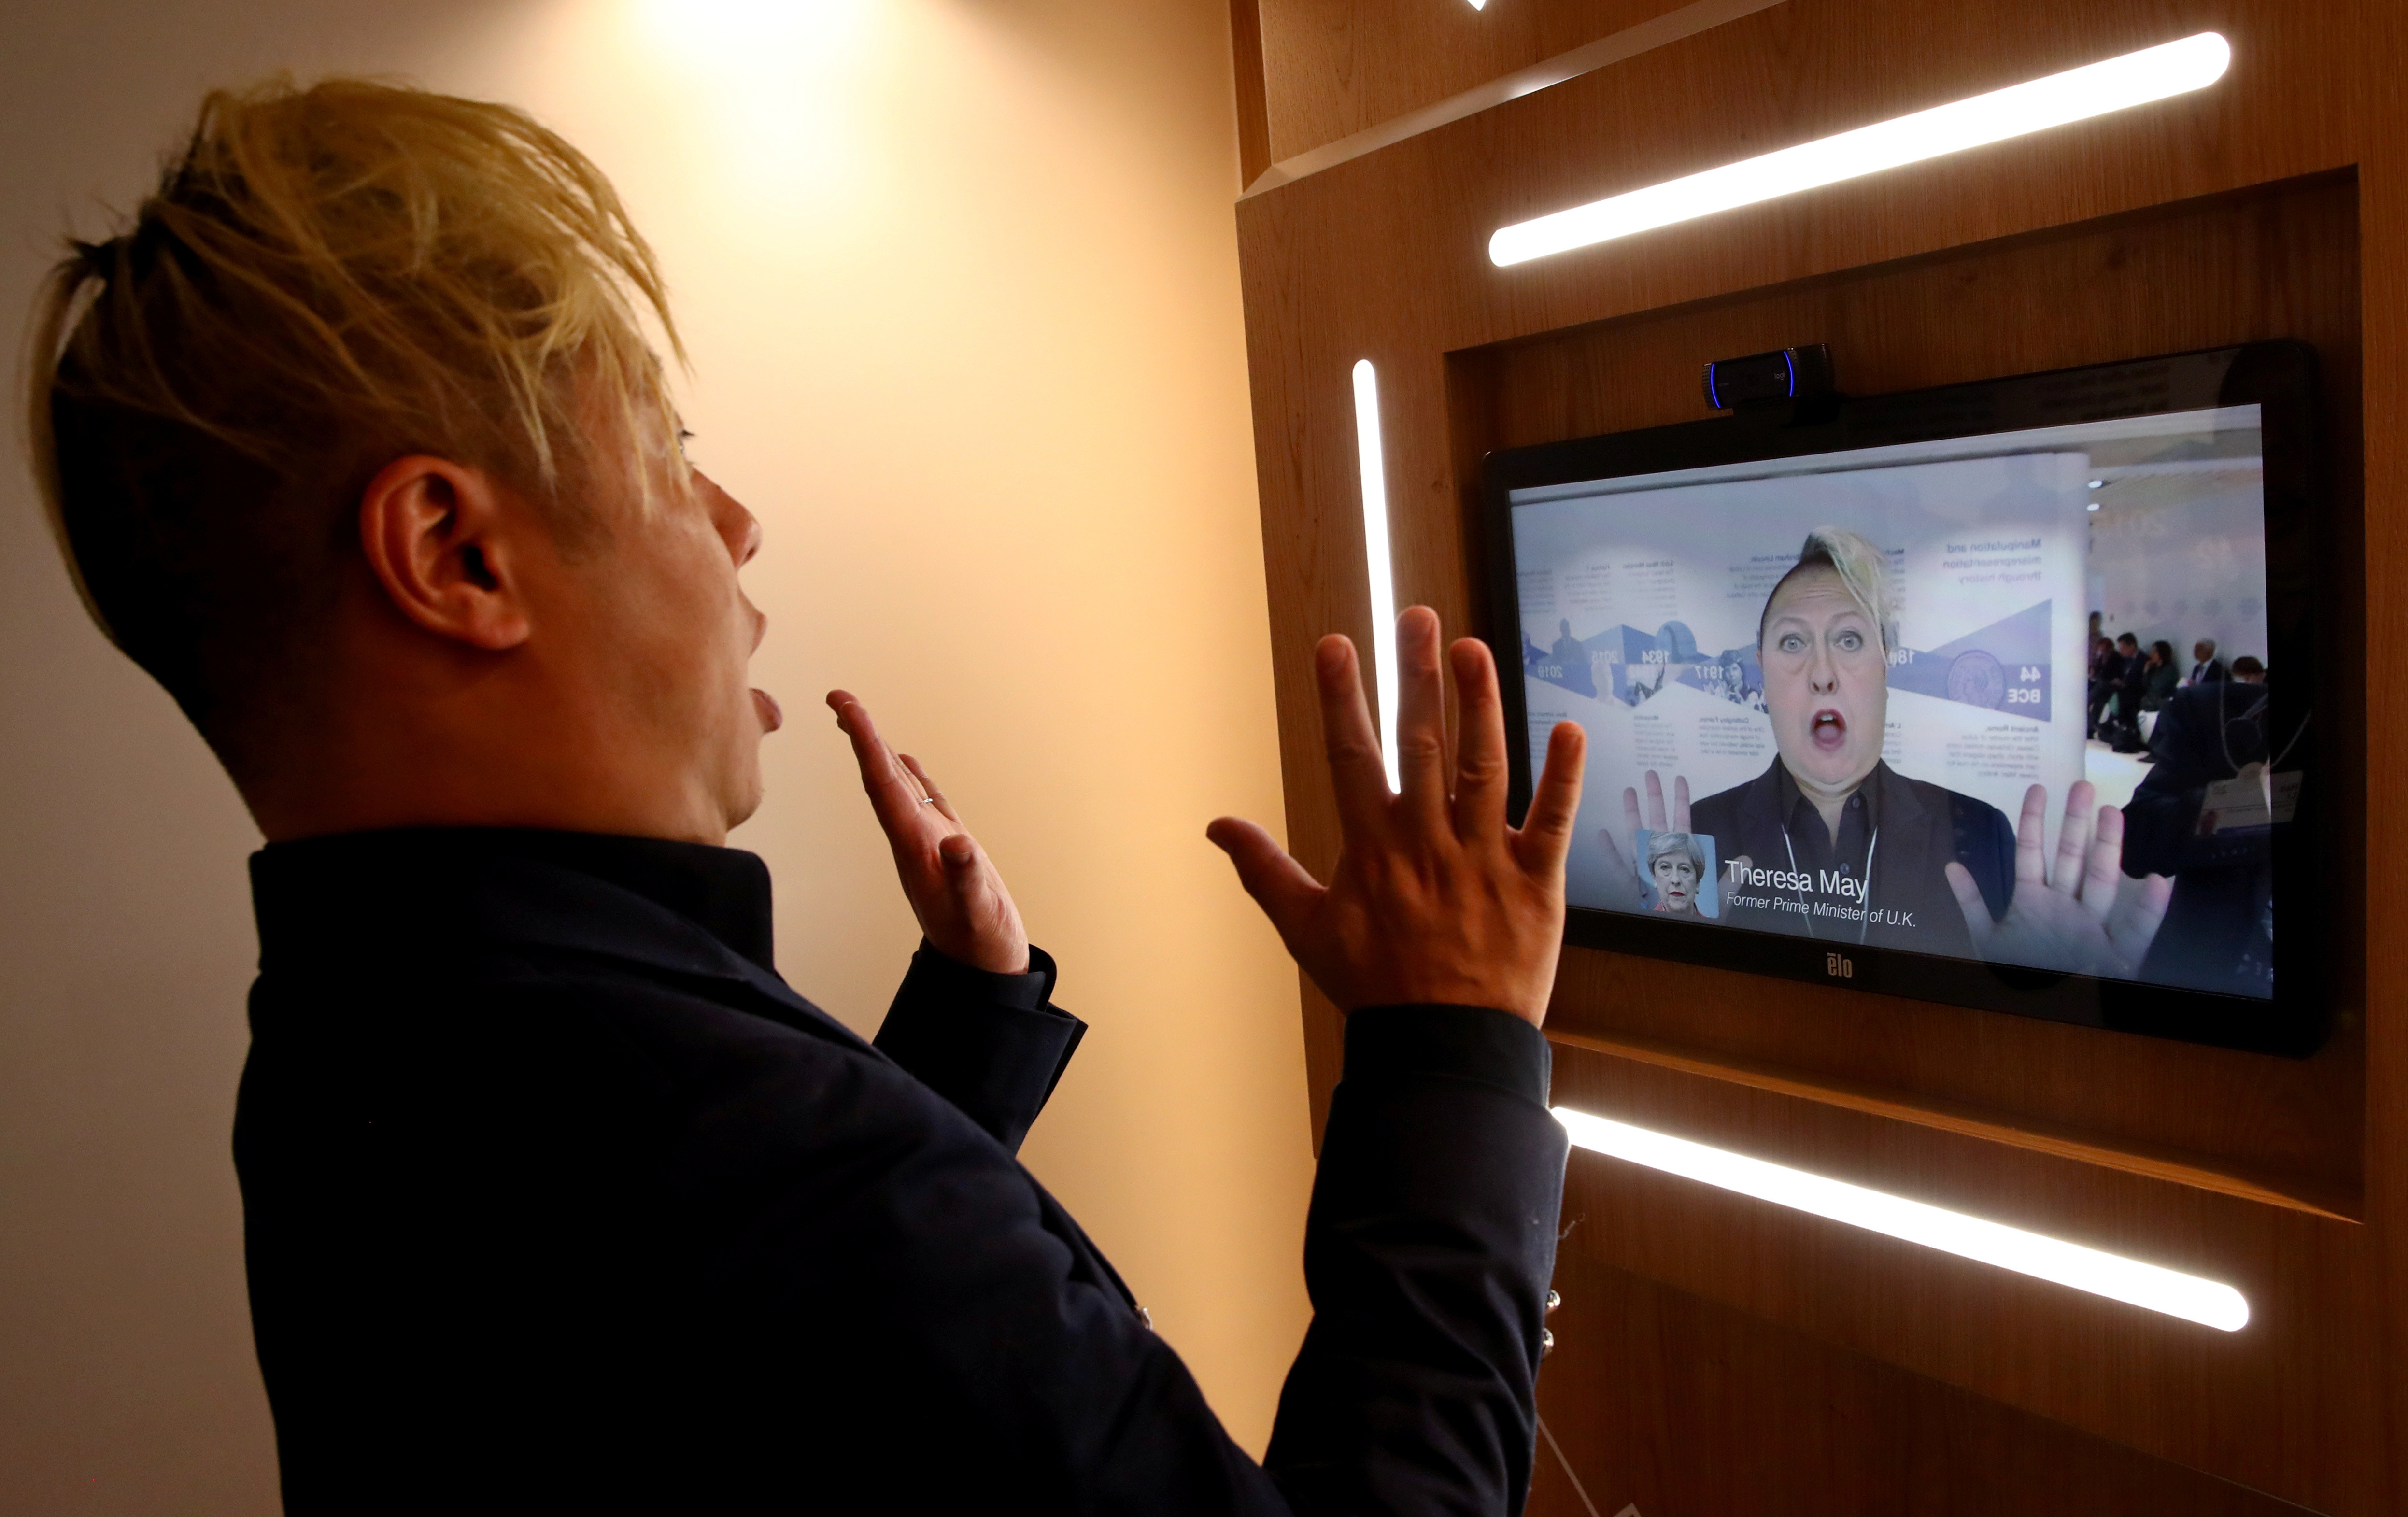 Associate professor of computer science at the University of Southern California Hao Li showcases a 'deepfake' video with Britain's former Prime Minister Theresa May during the 50th World Economic Forum (WEF) annual meeting in Davos, Switzerland, January 22, 2020. REUTERS/Denis Balibouse - RC23LE9MMLXY